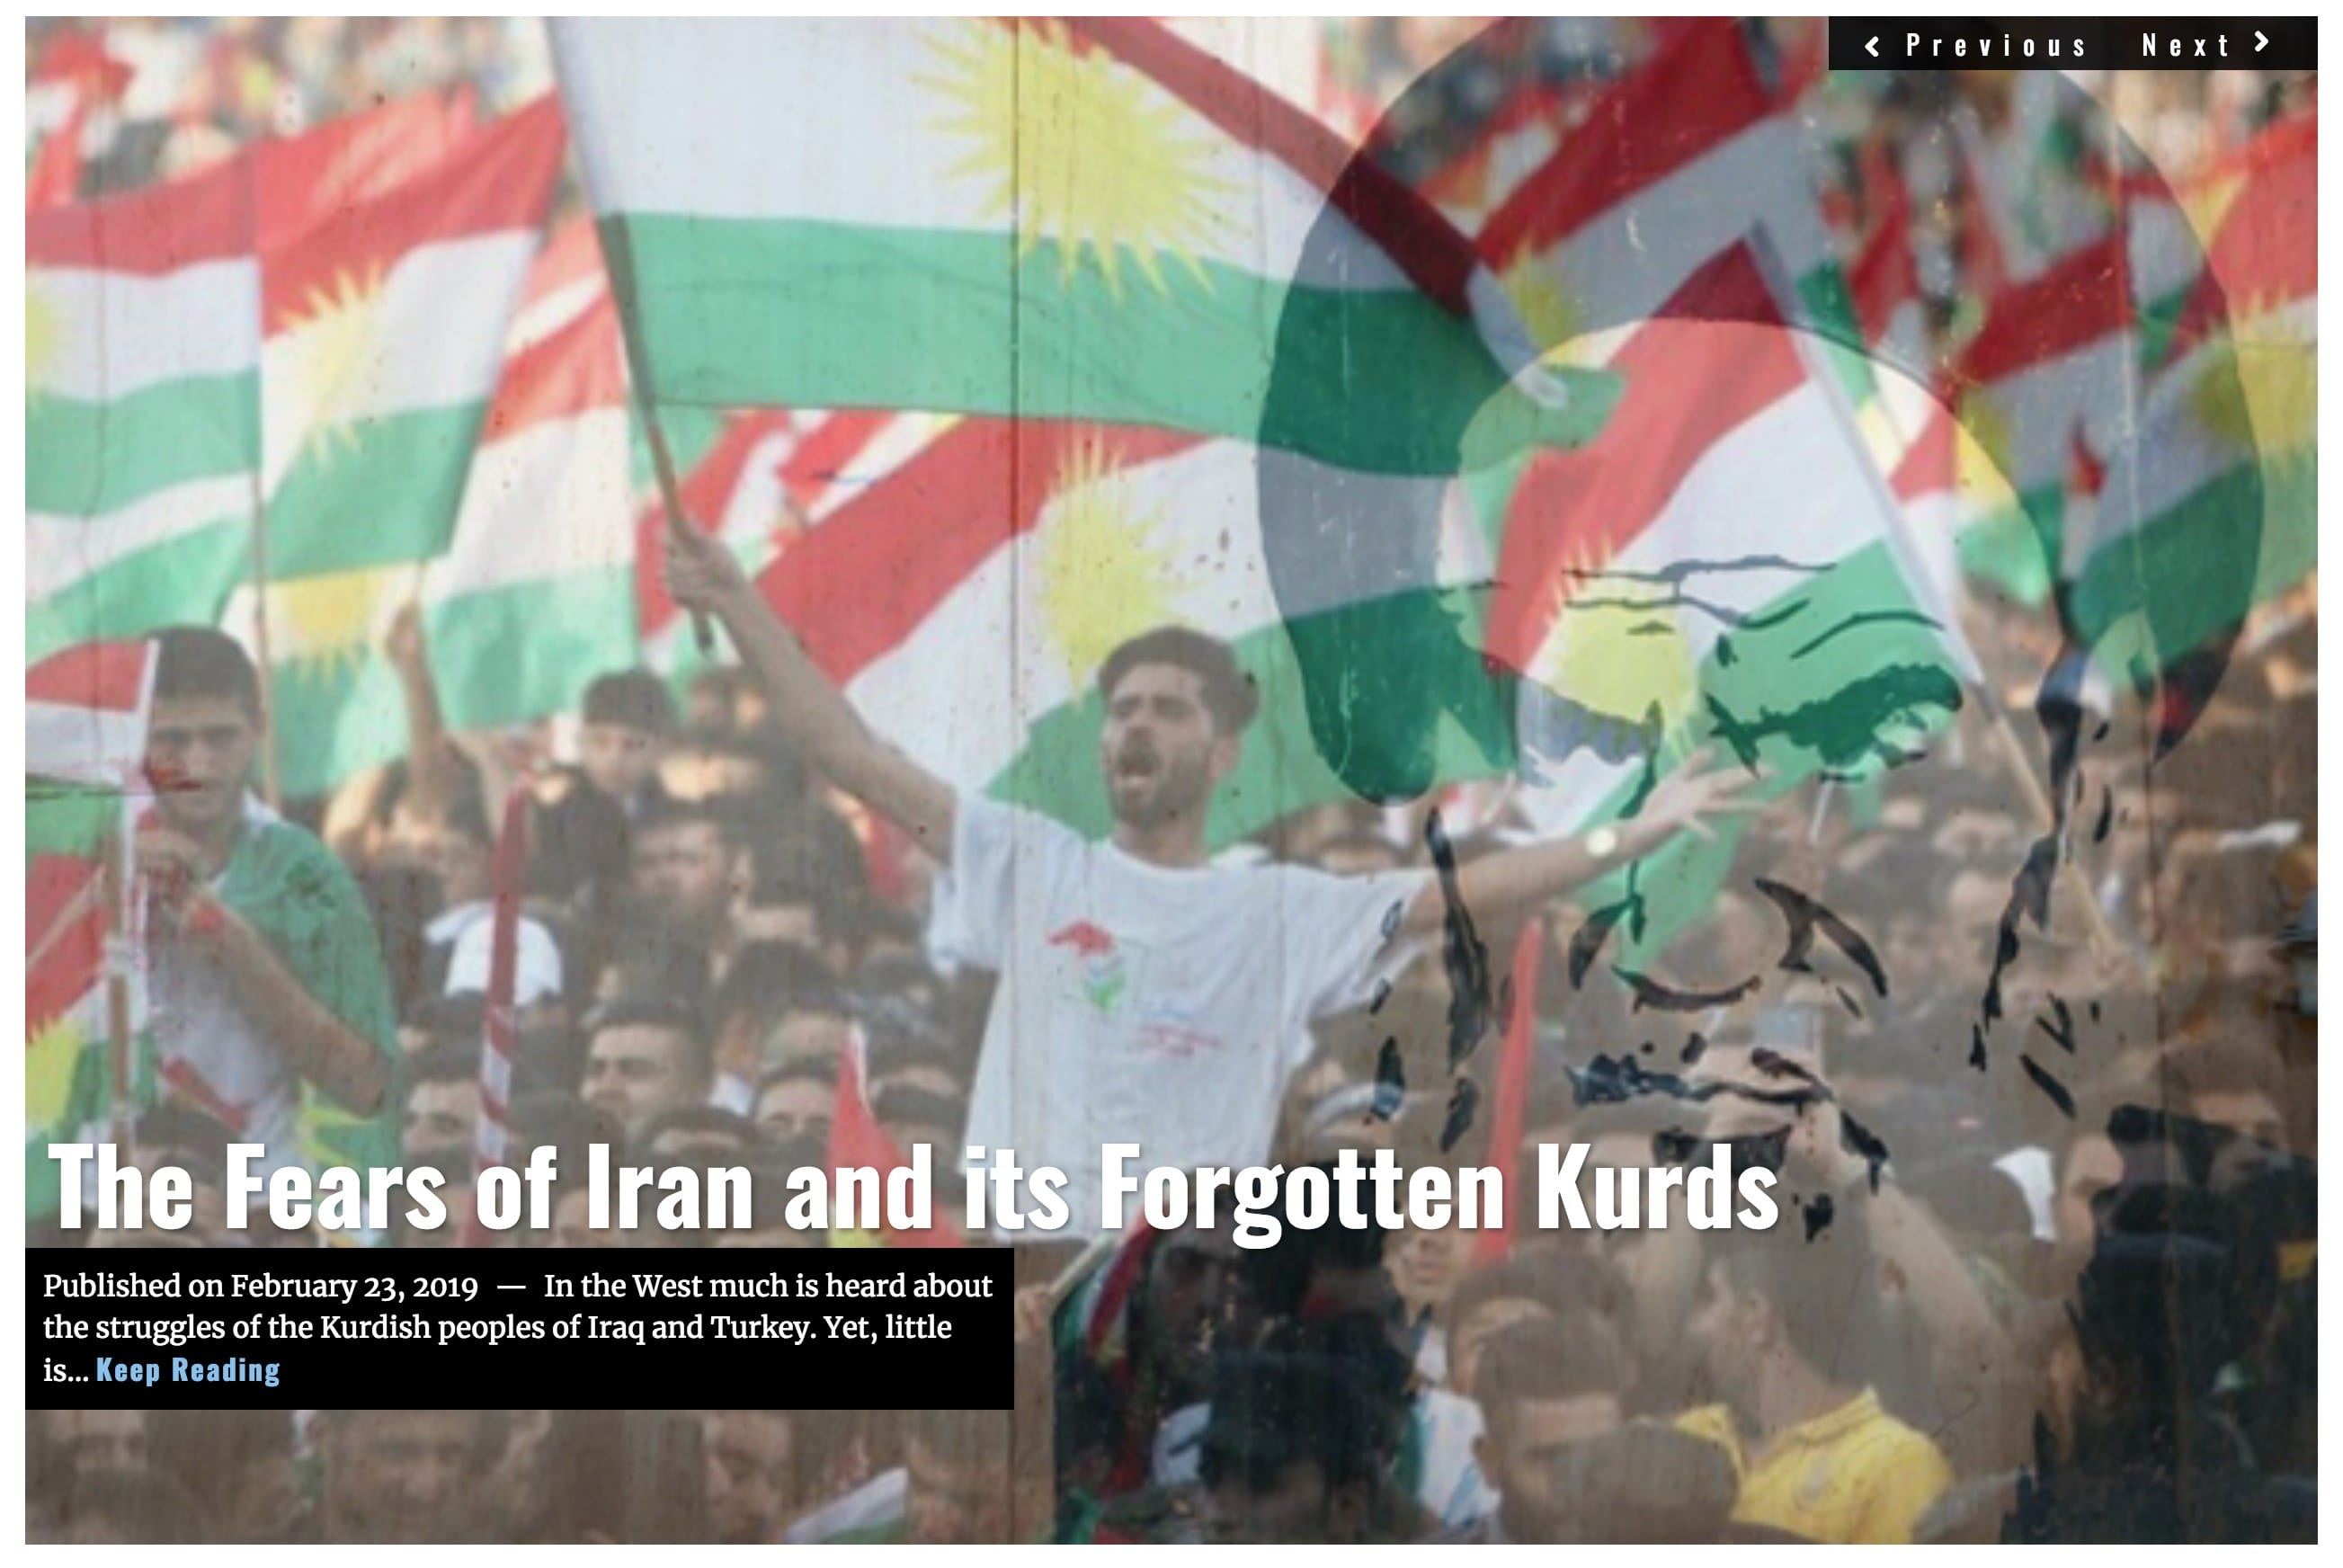 Image Lima Charlie News Headline Fears of Iran Forgotten Kurds DeAtkine FEB 23 2019